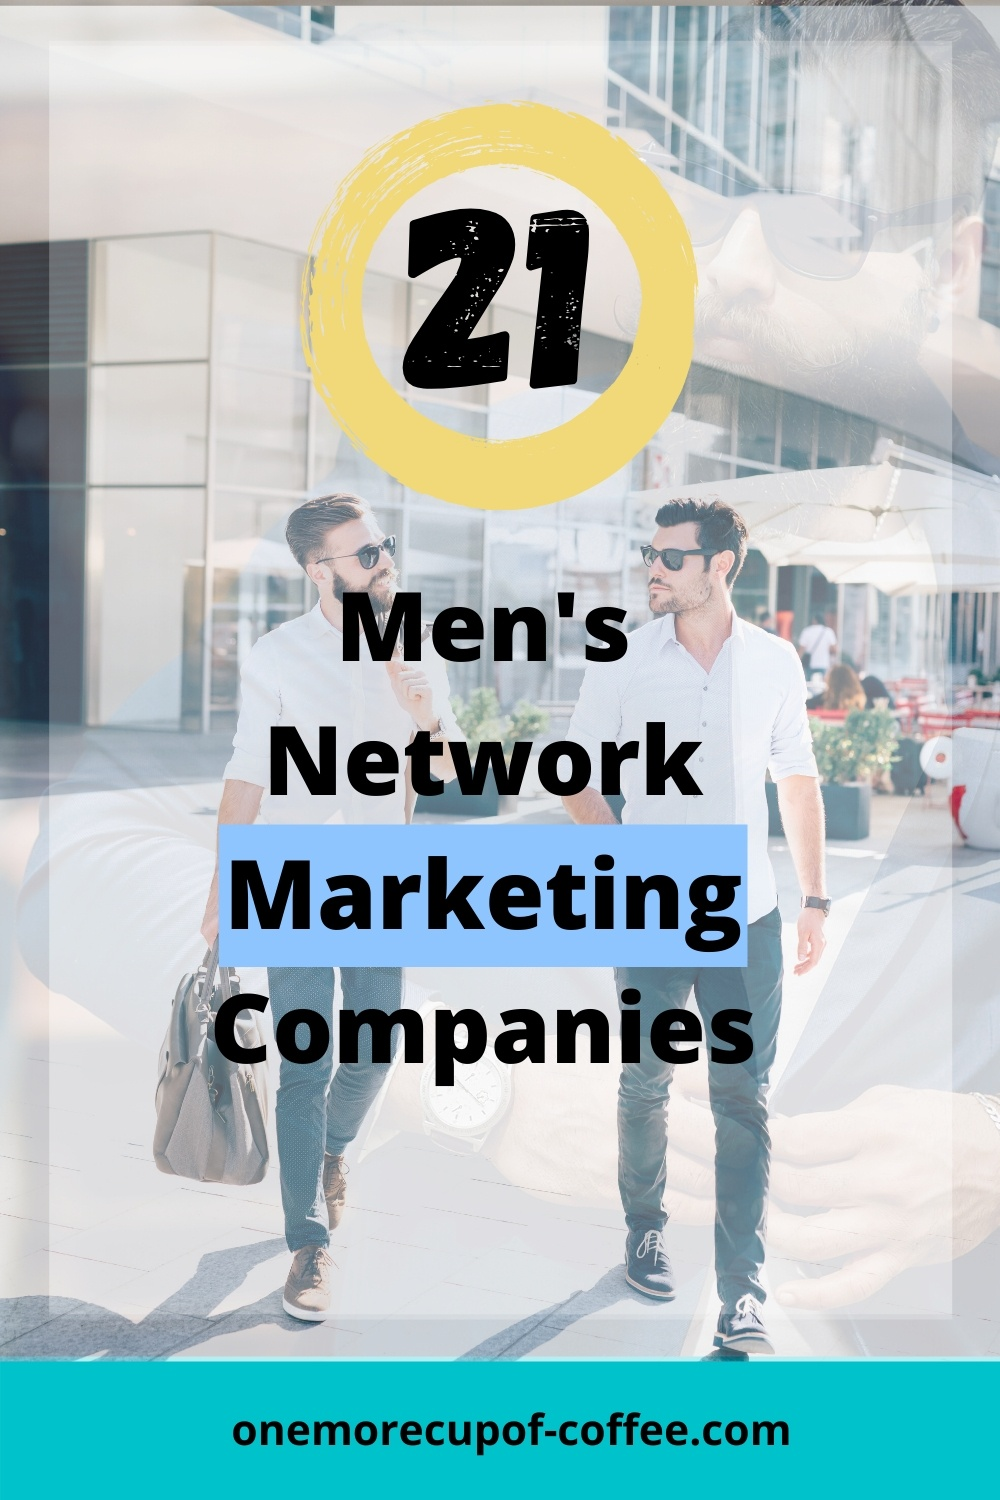 Two men in suits to represent Men's Network Marketing Companies